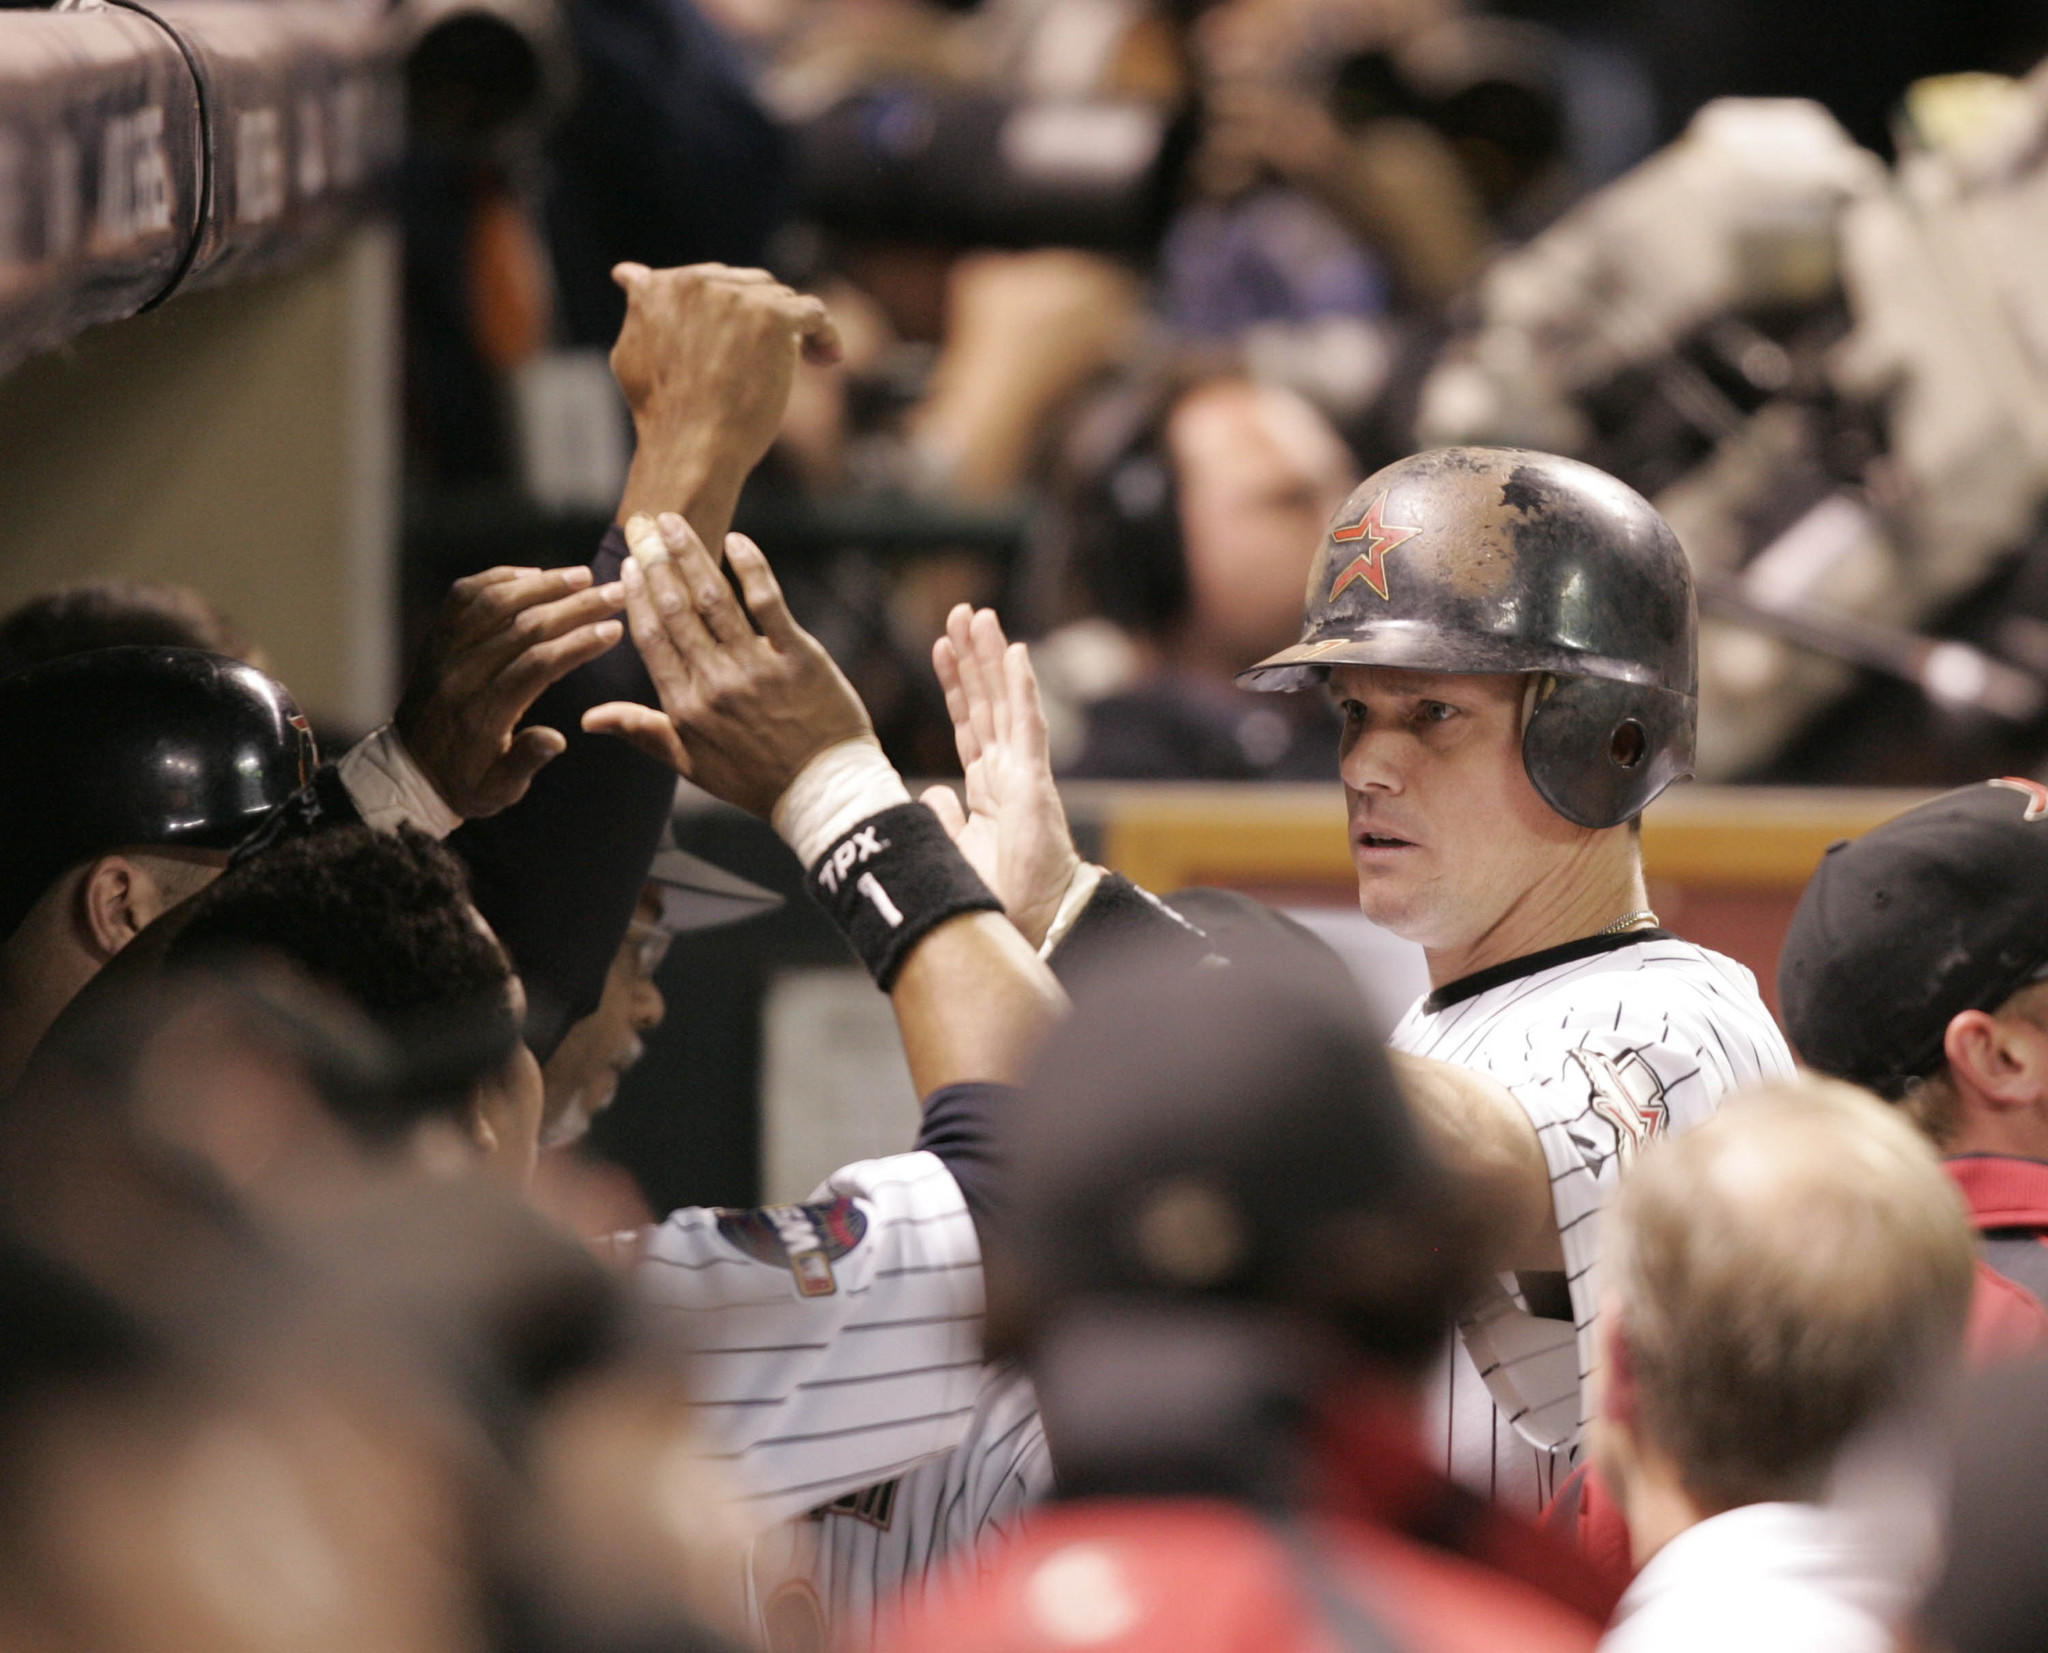 Craig Biggio is welcomed back to the dugout after he lead off with a double and scored the games first run on a Lance Berkman basehit during game 3 of the World Series at Minute Maid park in Houston TX Tuesday October 25, 2005.Tribune Photo by Scott Strazzante October 25, 2005 Chicago White Sox Houston Astros World Series Game 3 at Minute Maid Park in Houston, Texas.